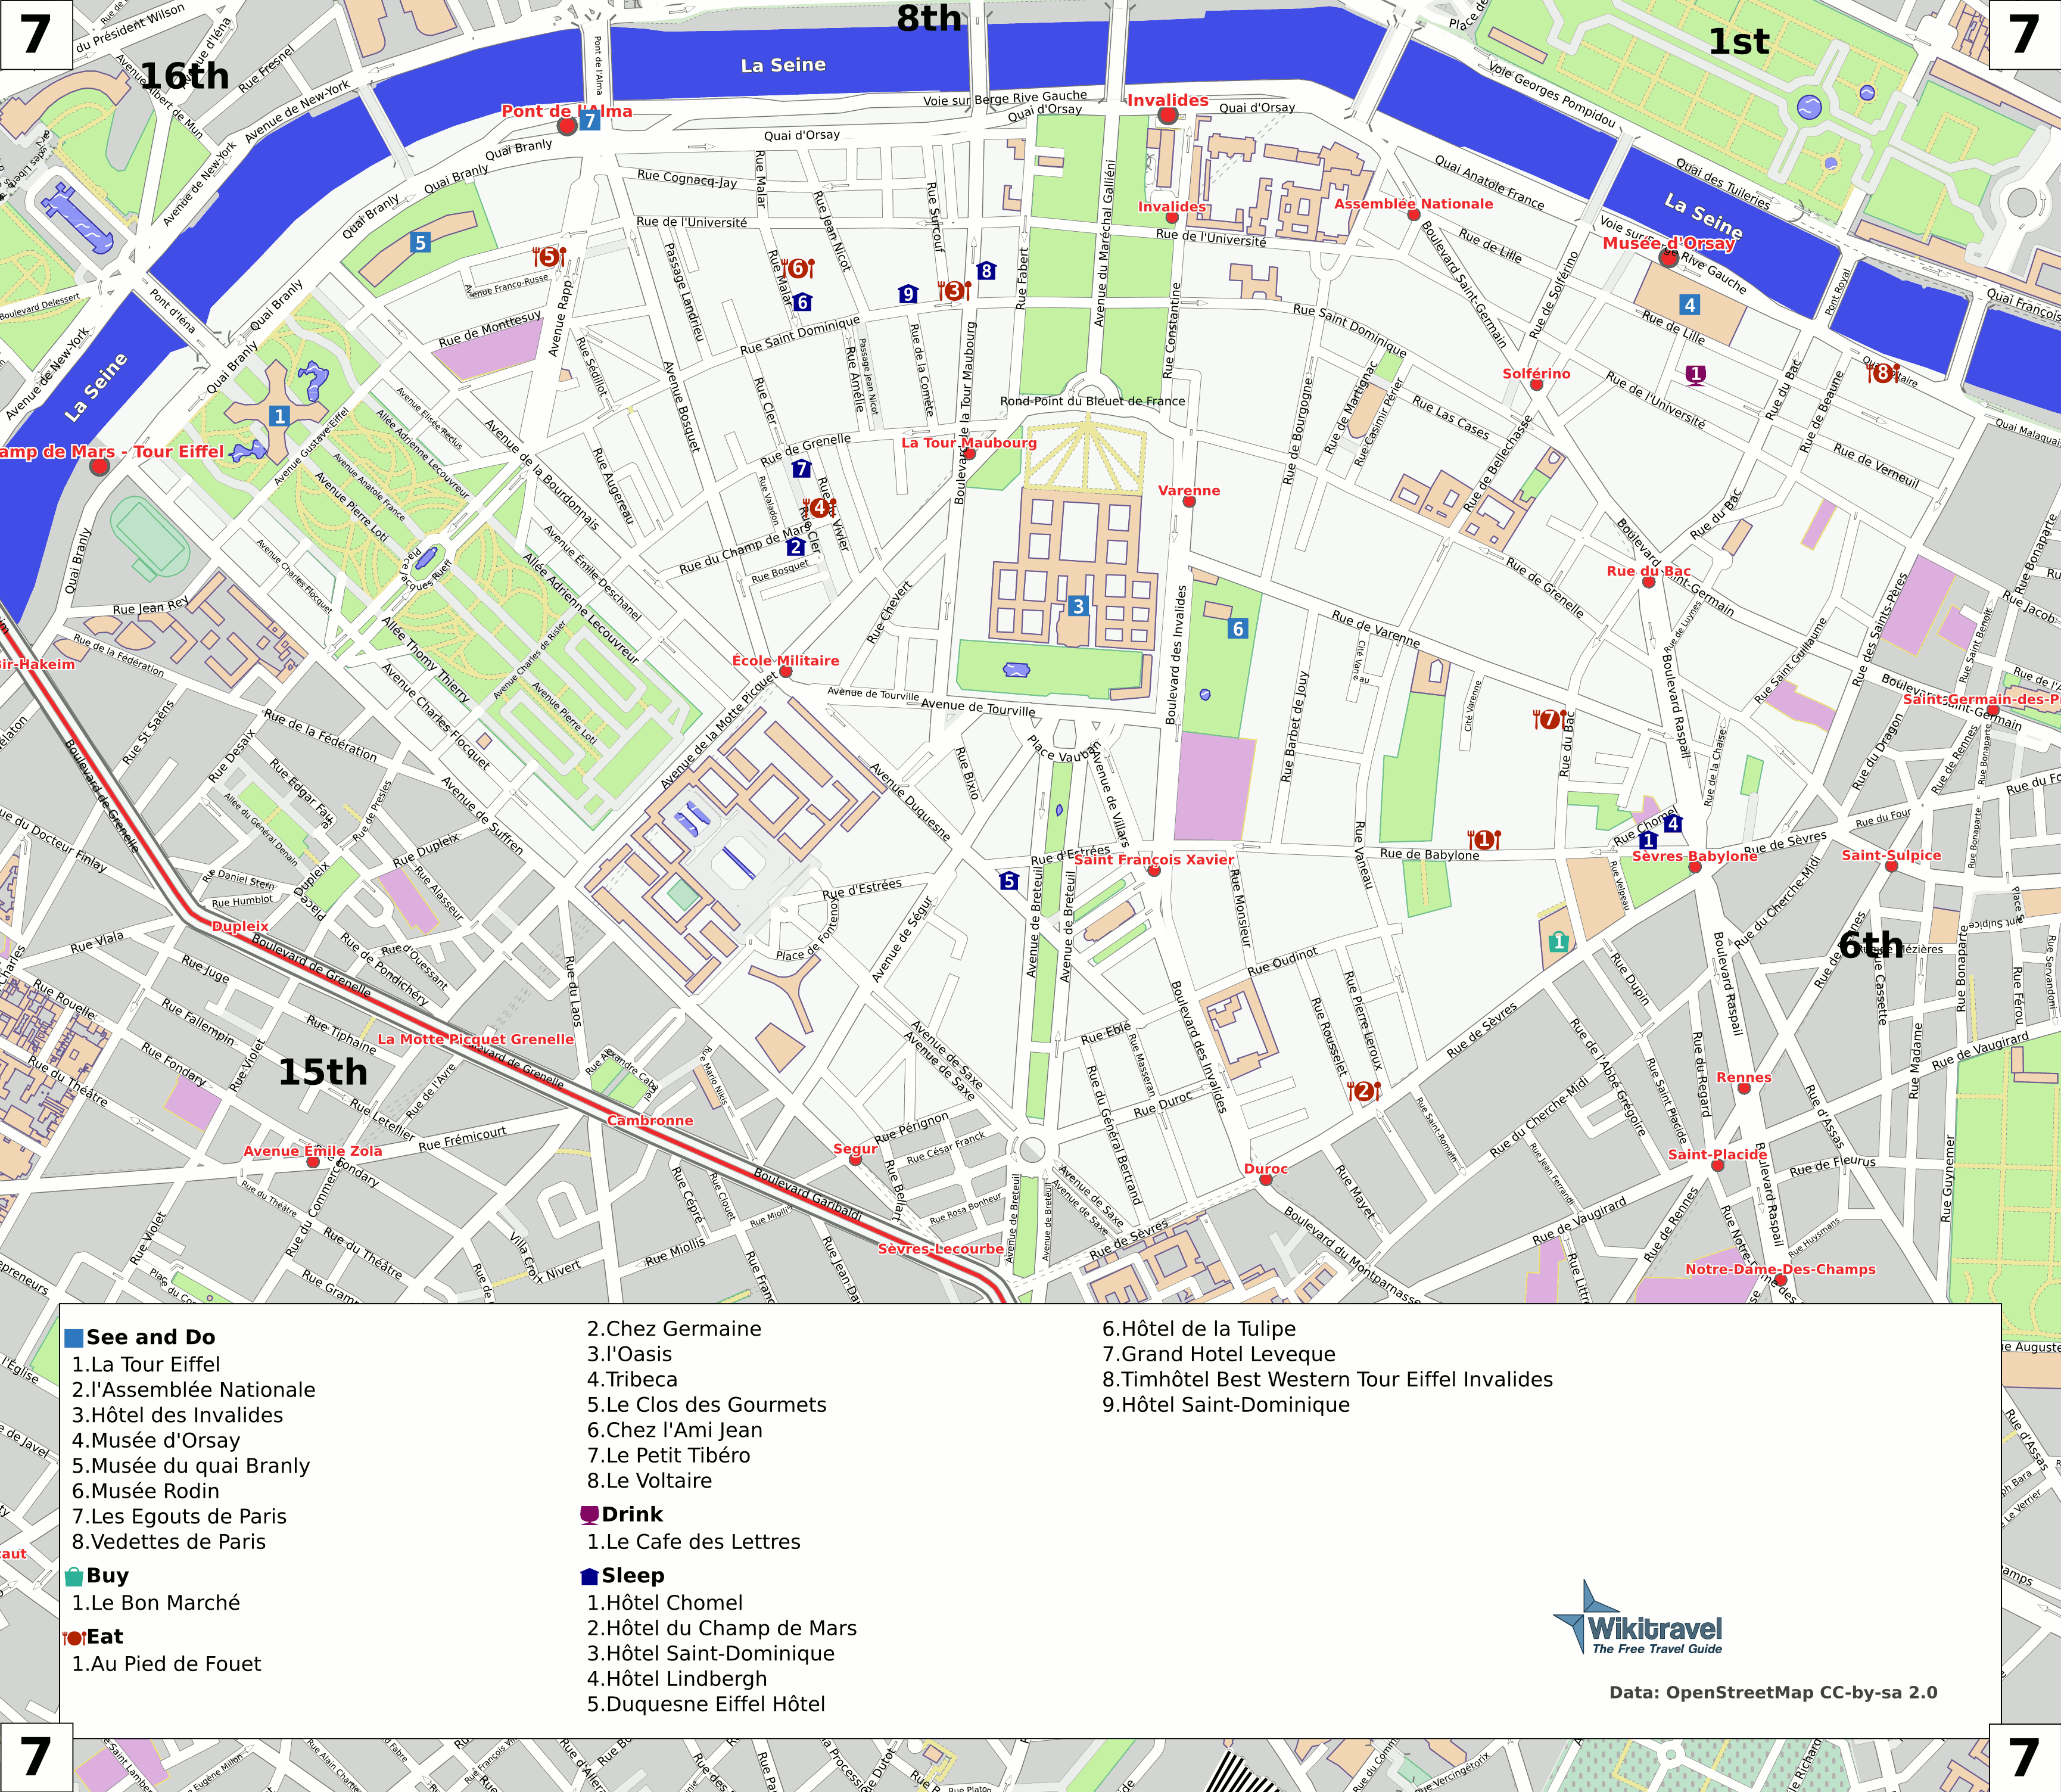 Paris 7th arrondissement map with listings.png